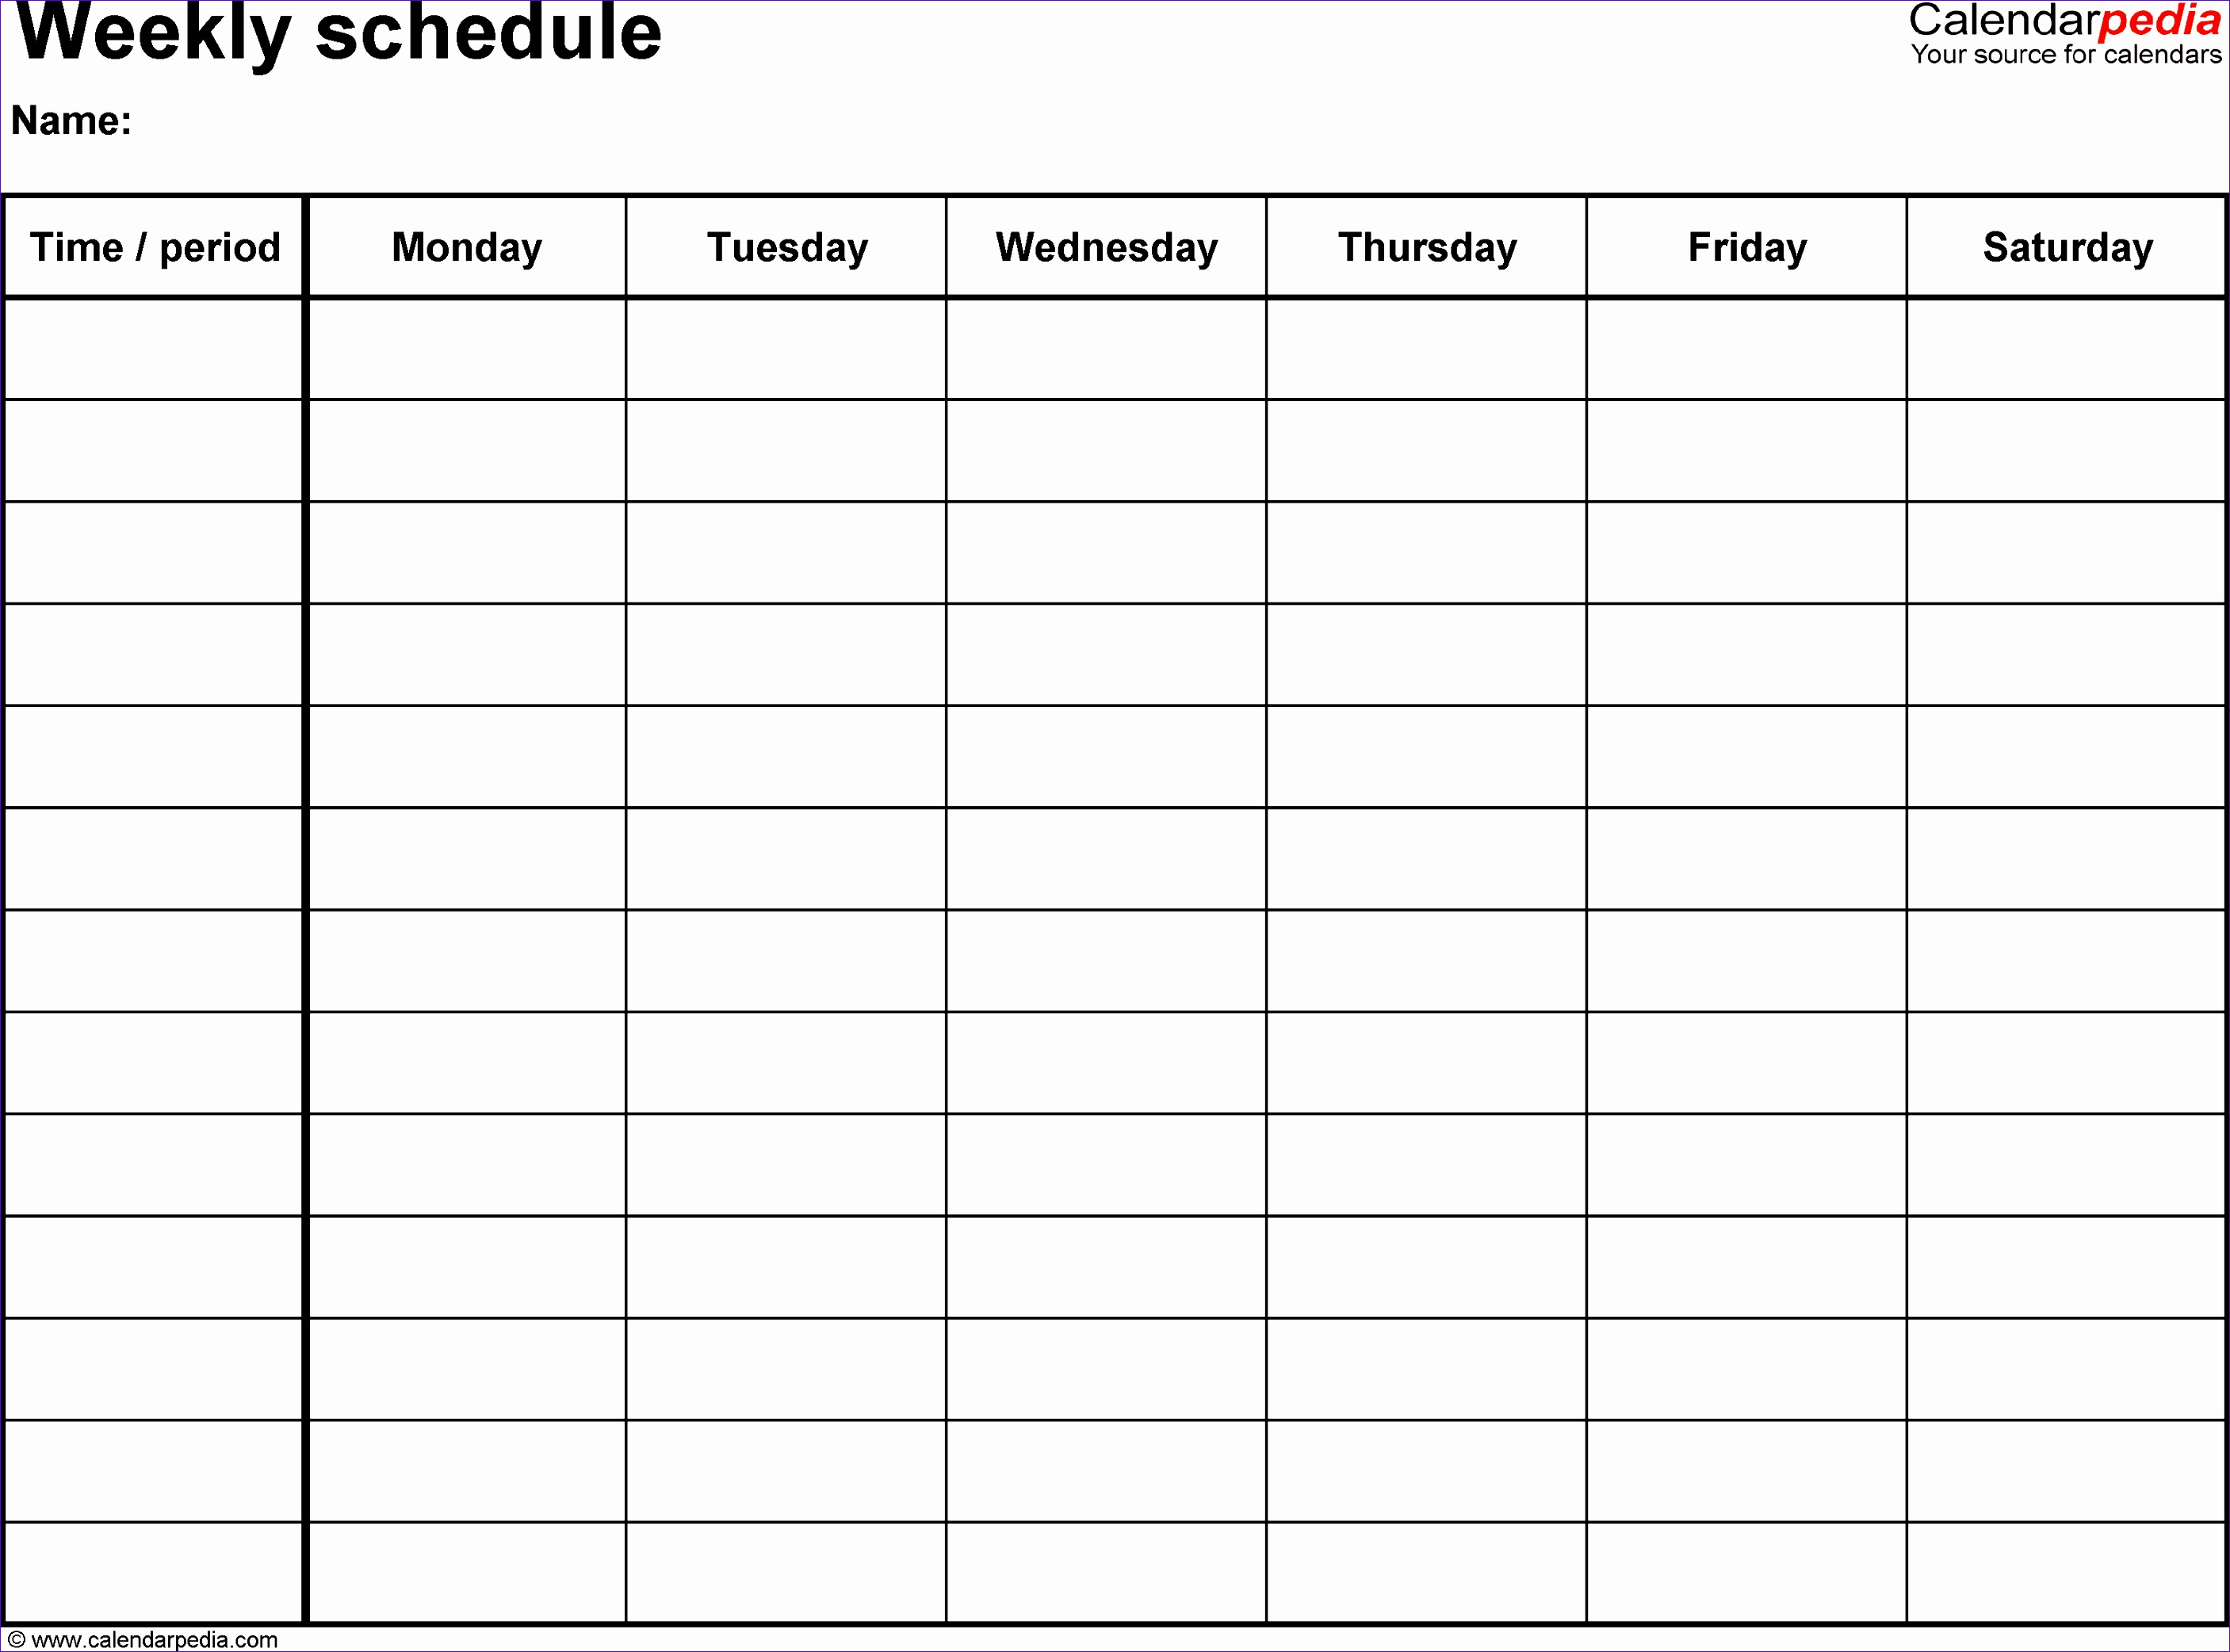 Weekly Time Sheets Deebq Lovely Free Weekly Schedule Templates for Pdf 18 Templates